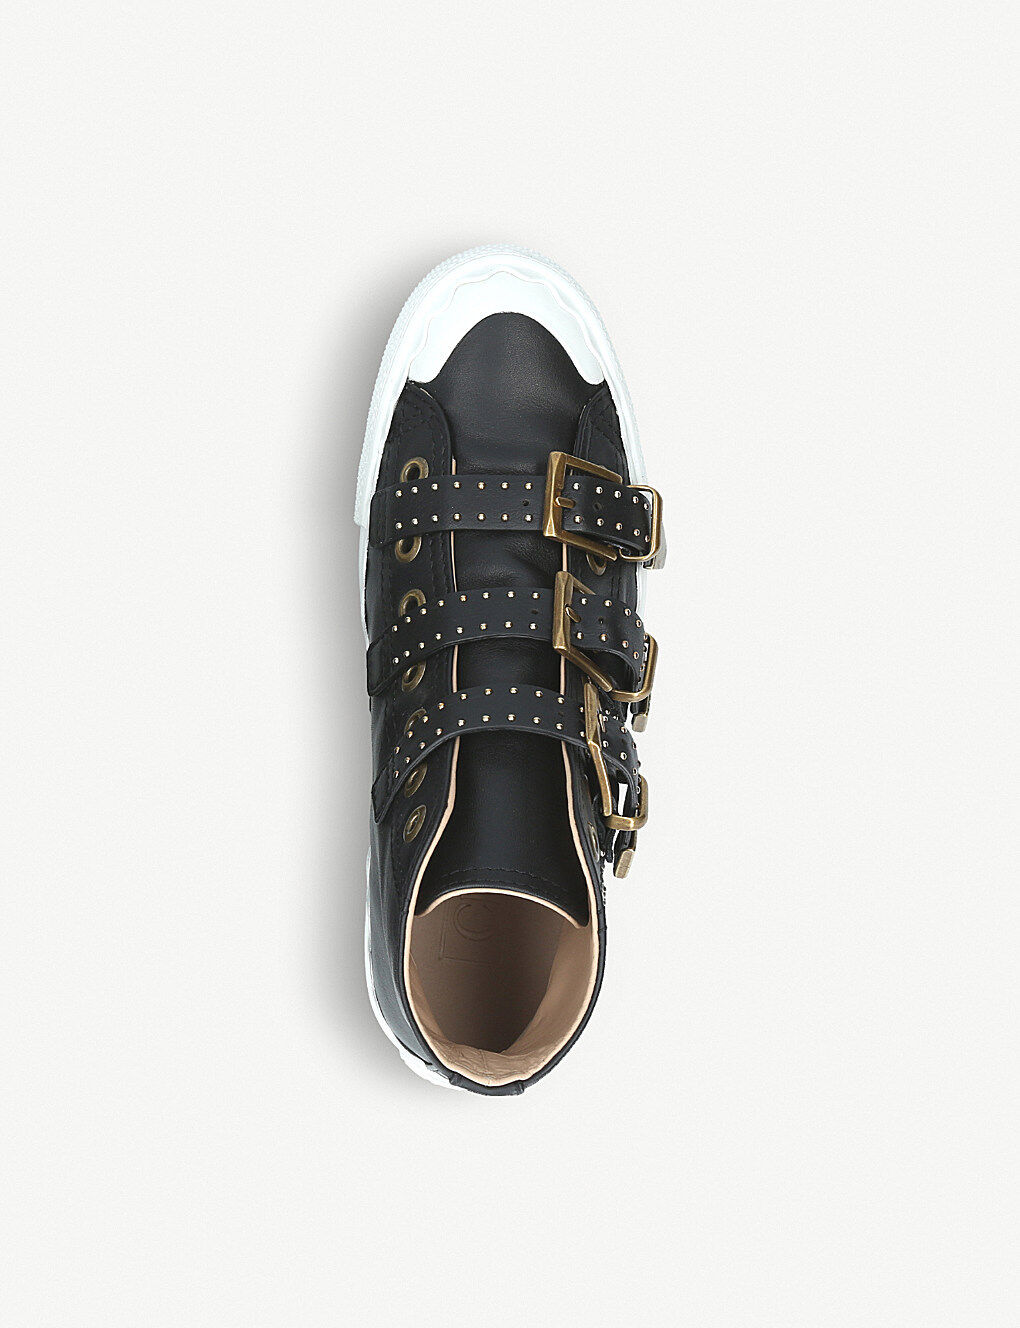 785 Chloe Kyle Susanna Studded Black Leather High Top Top Top Sneakers Ankle Boots 37 8332d0